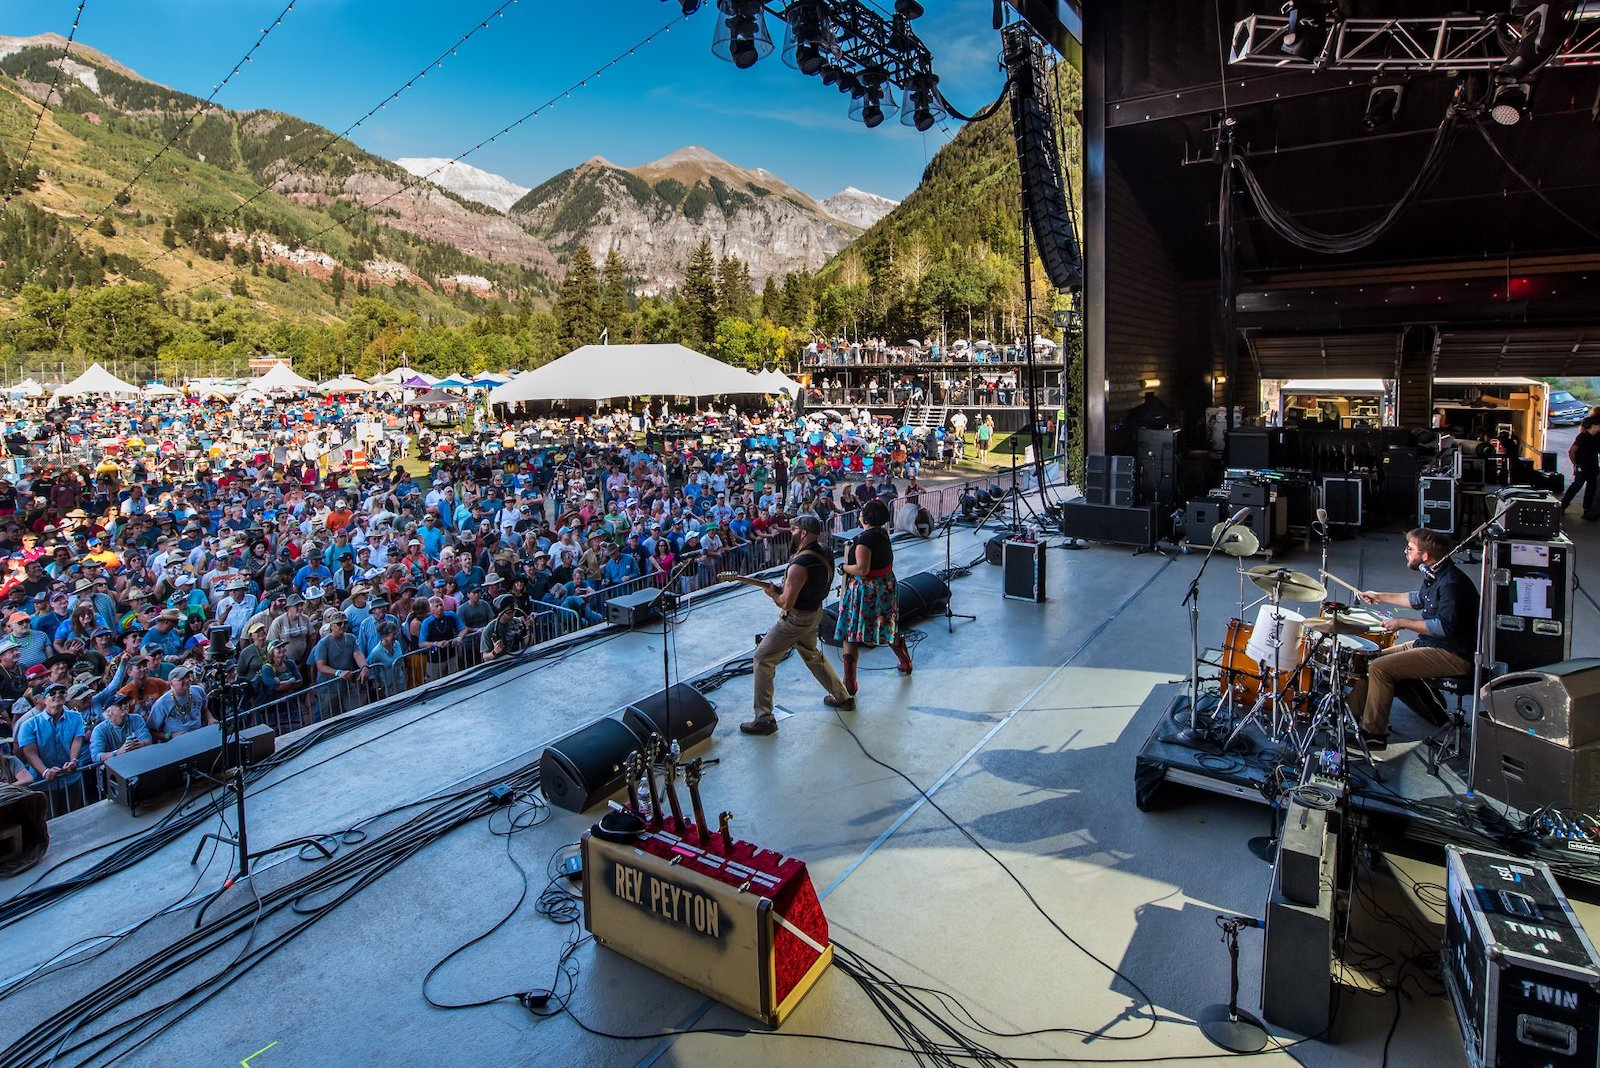 Image of the stage at Telluride Blues & Brews Fest in Colorado